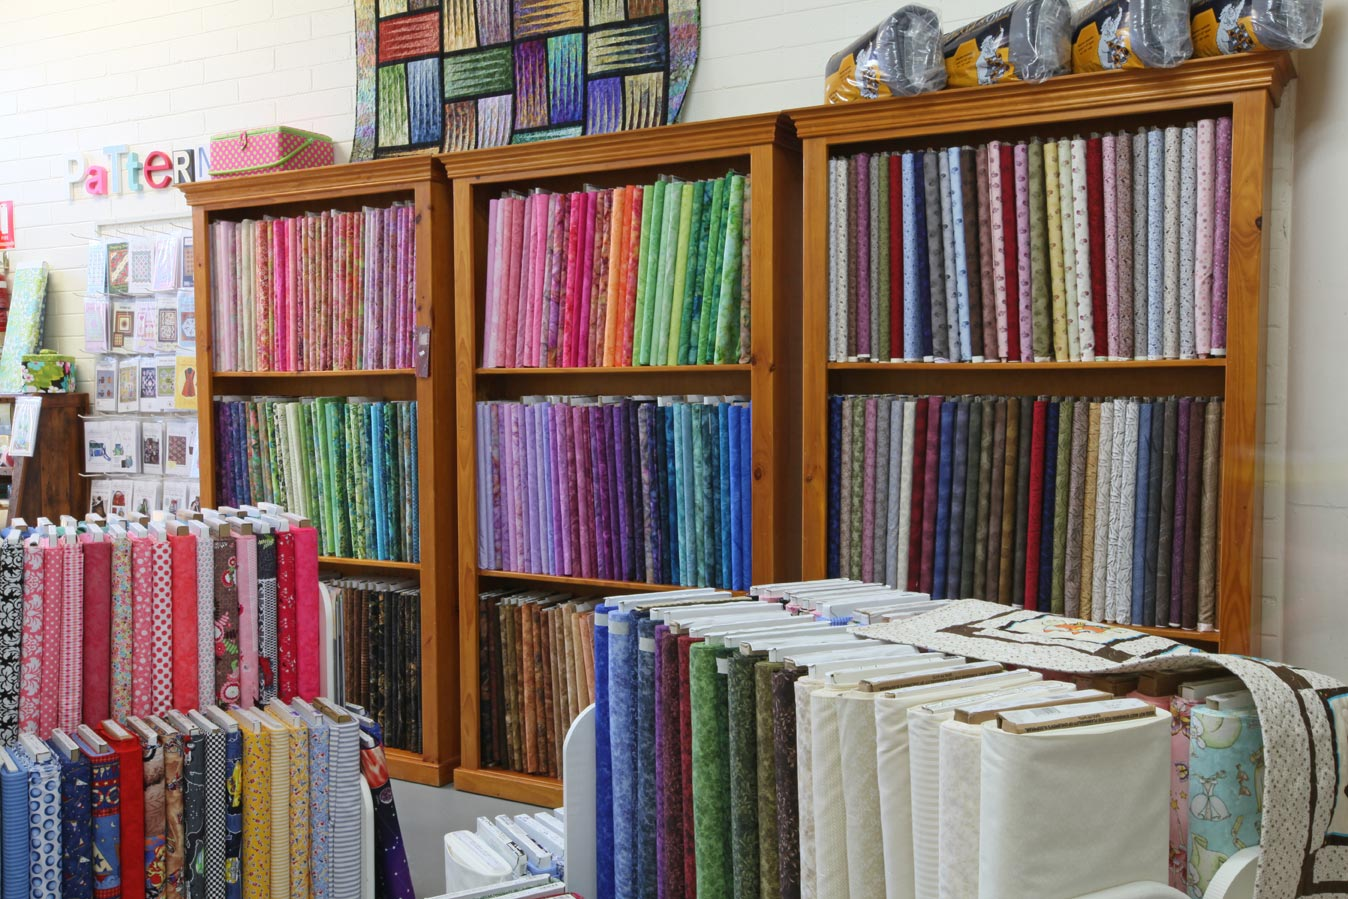 The Quilters' Patch shop interior fabrics